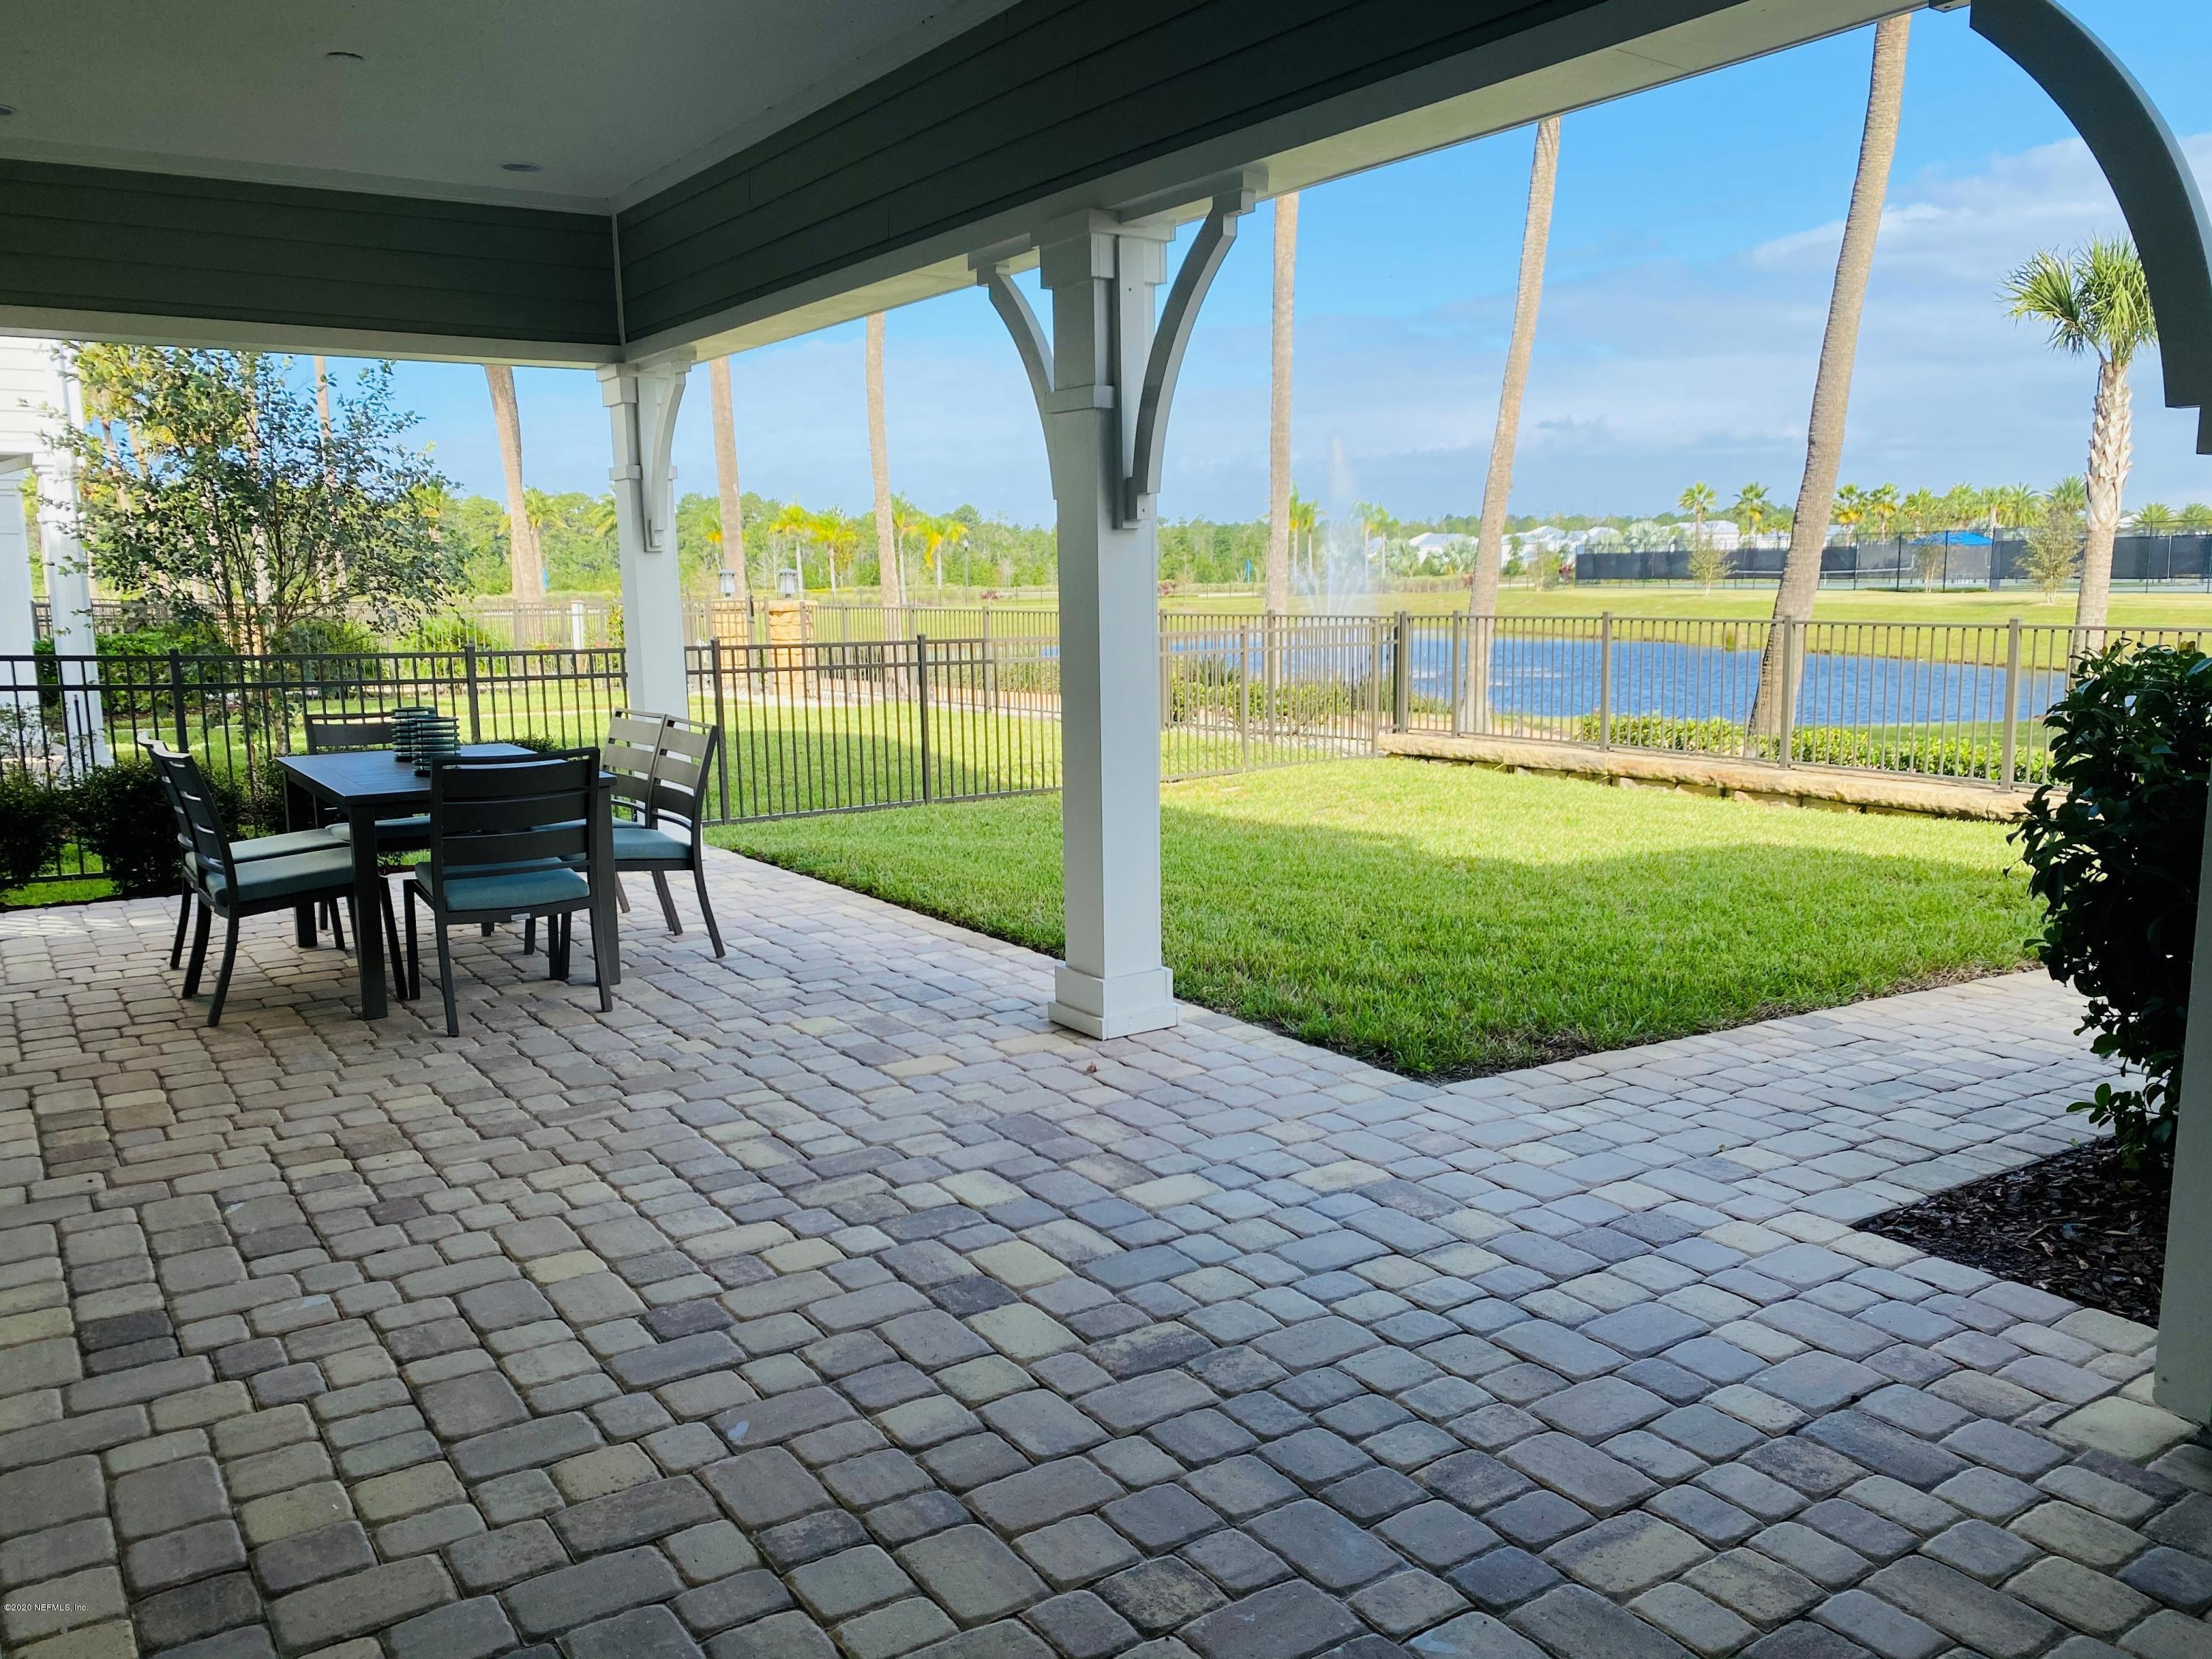 83 RUM RUNNER, ST JOHNS, FLORIDA 32259, 4 Bedrooms Bedrooms, ,3 BathroomsBathrooms,Residential,For sale,RUM RUNNER,1083048